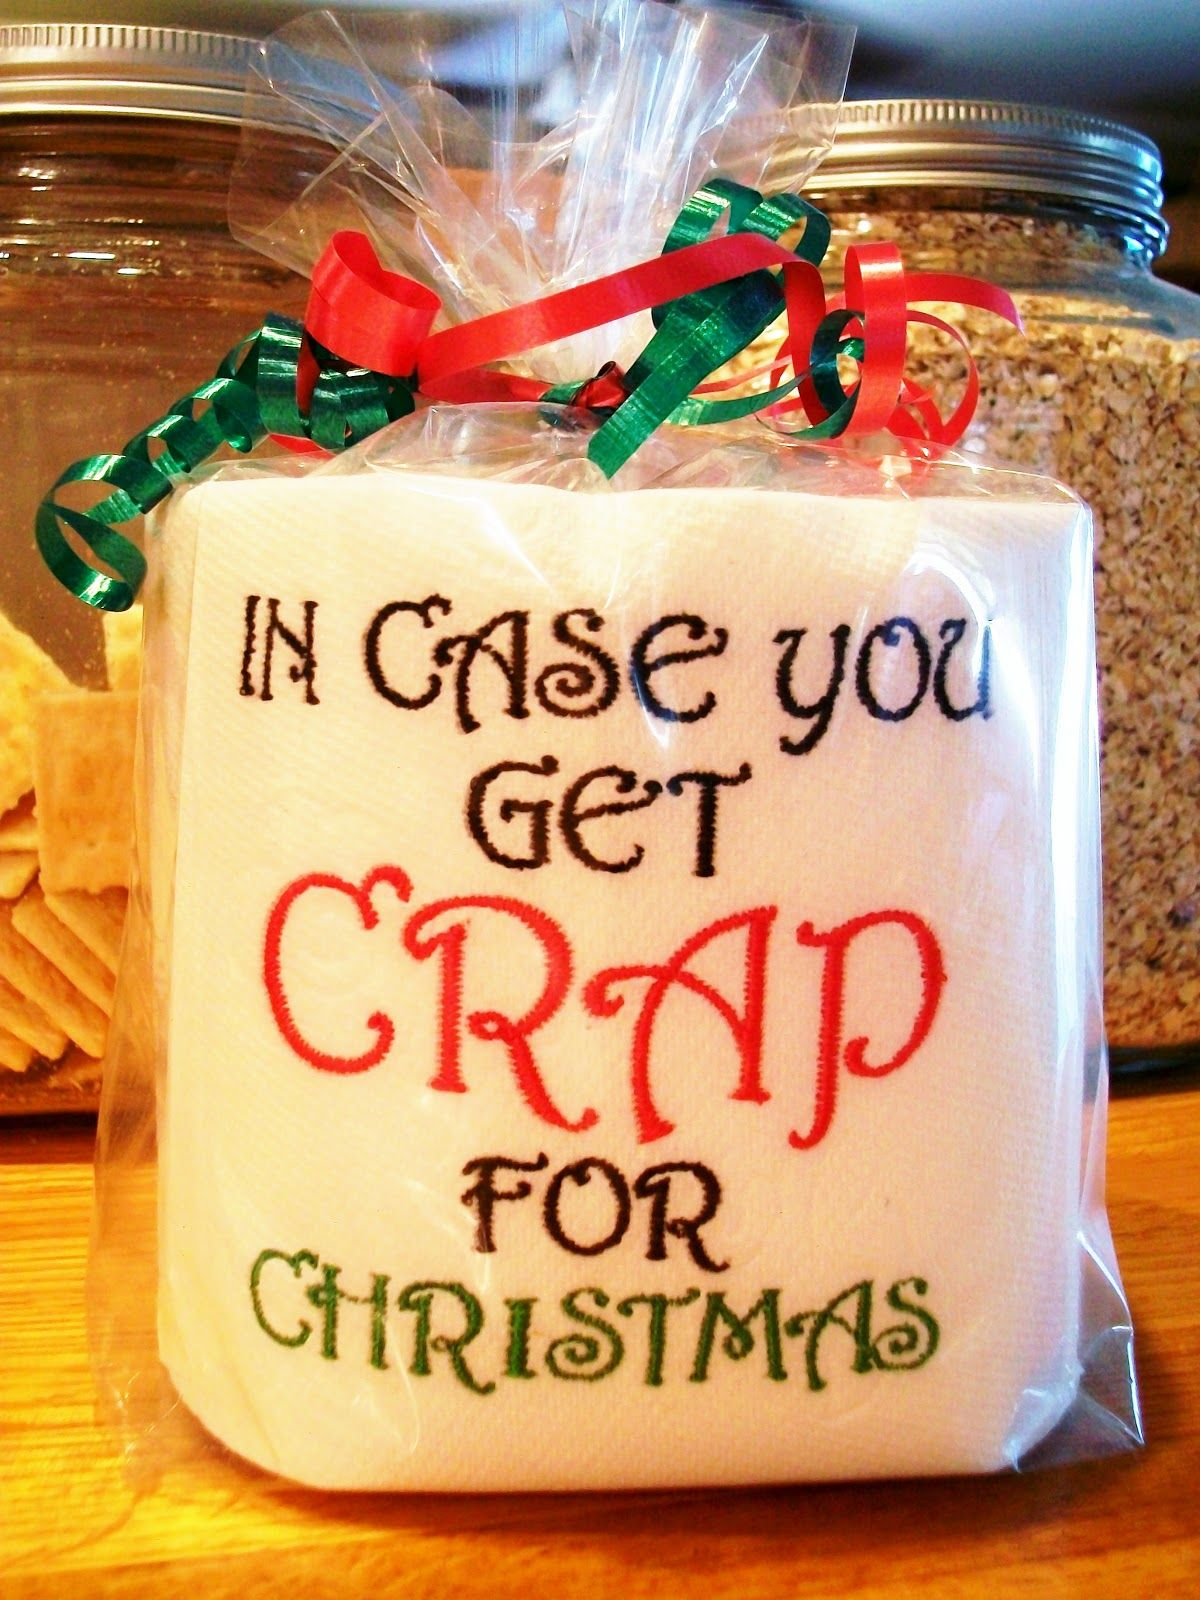 Funny gag in case you get crap for christmas useful and funny too funny christmas gag gift toilet paper solutioingenieria Choice Image